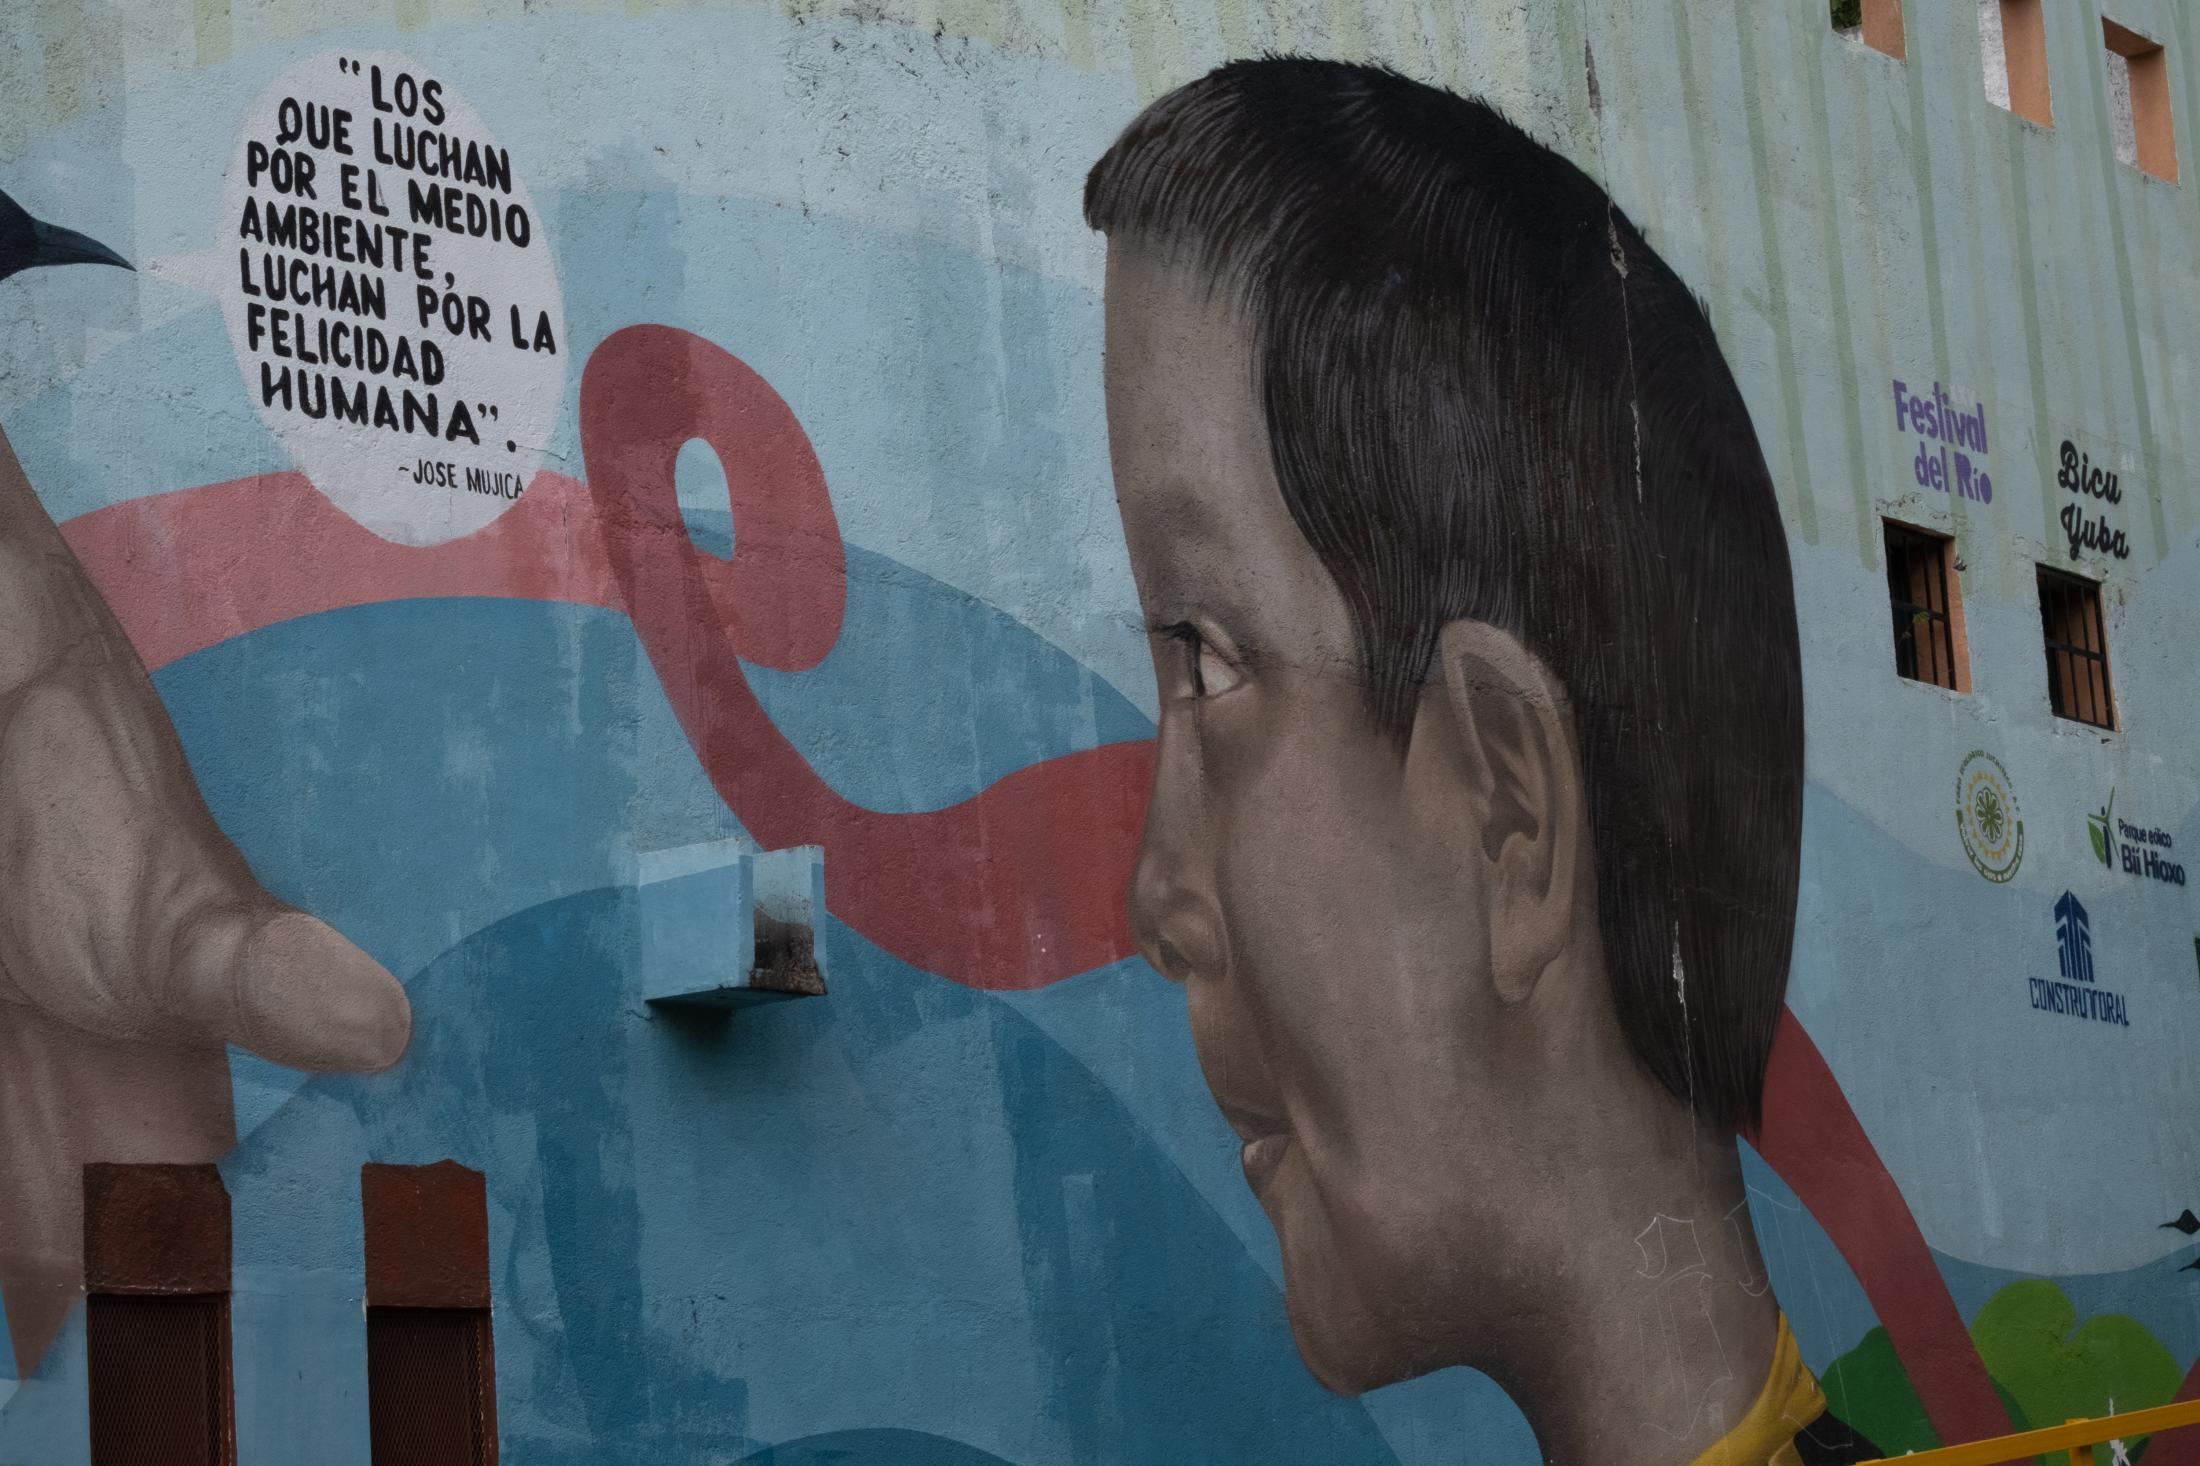 """Continuation of the mural where Uruguay´s ex-president Jose Mujica is quoted """"Those who fight for the environment, fight for human happiness""""."""